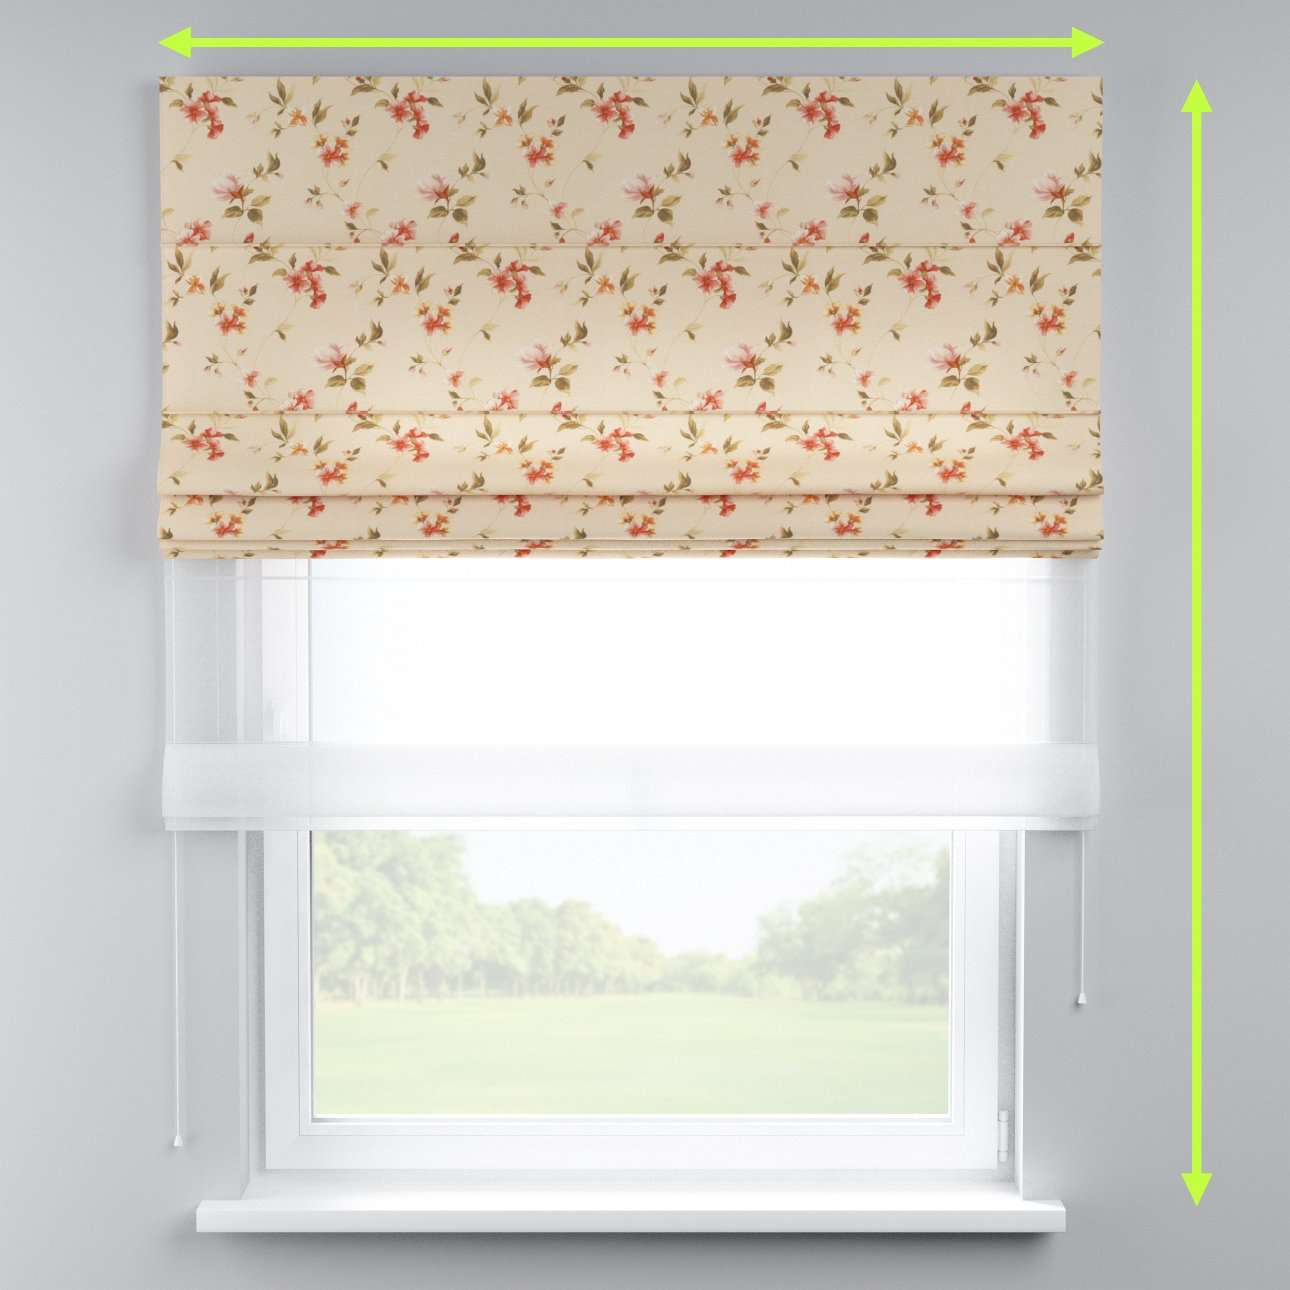 Voile and fabric roman blind (DUO II) in collection Londres, fabric: 124-05